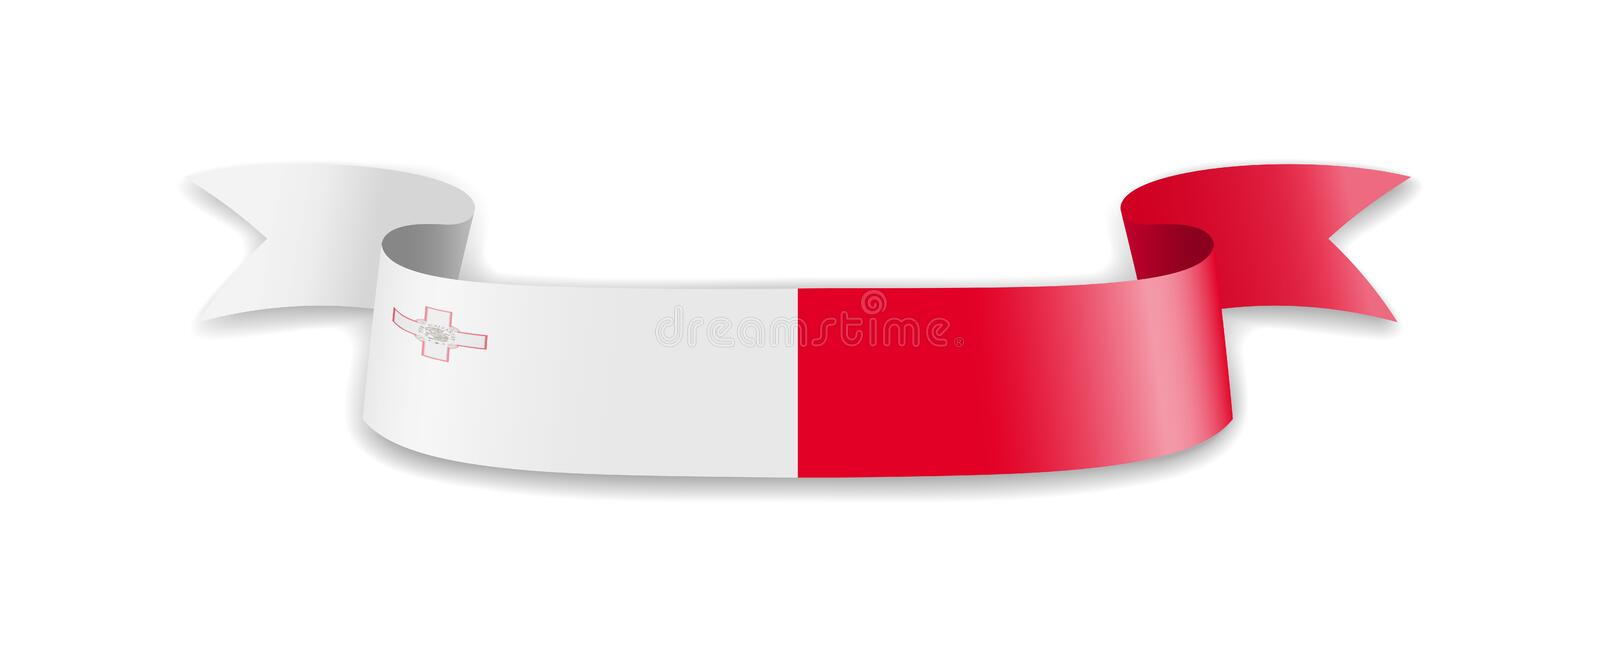 Malta flag in the form of wave ribbon stock illustration